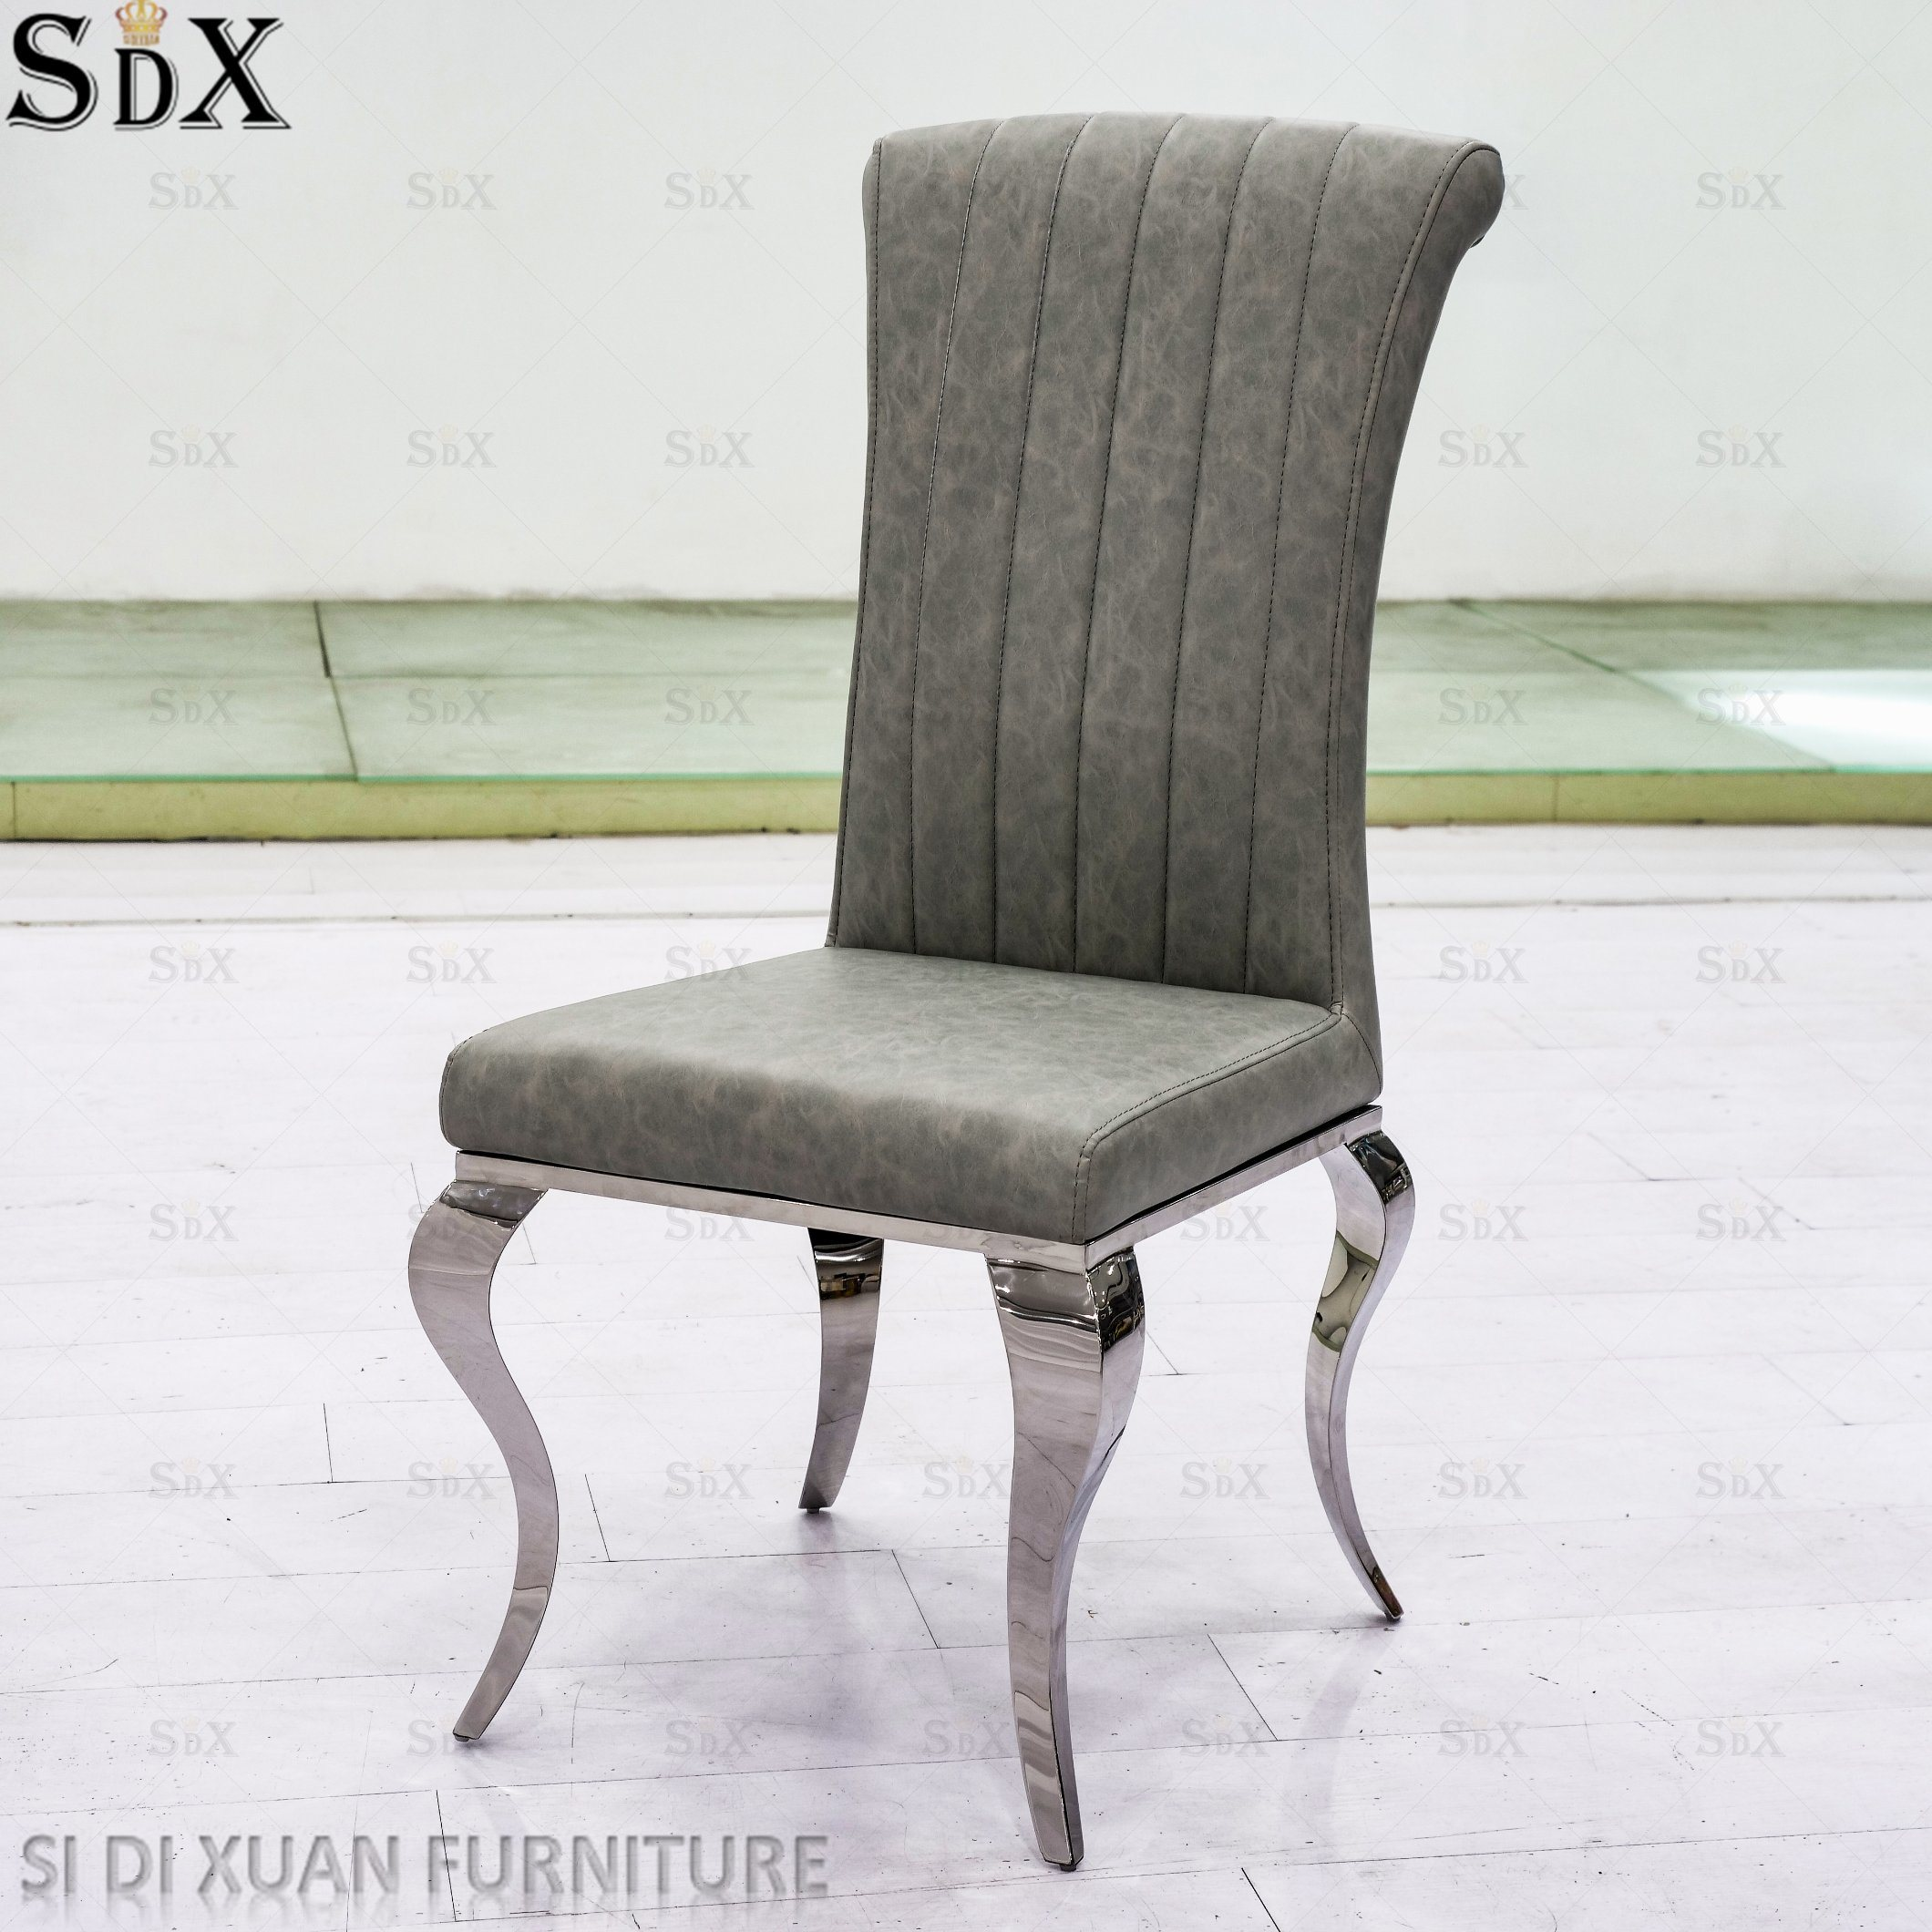 Hot Item European Style Stainless Steel Dining Room Chair Home Furniture